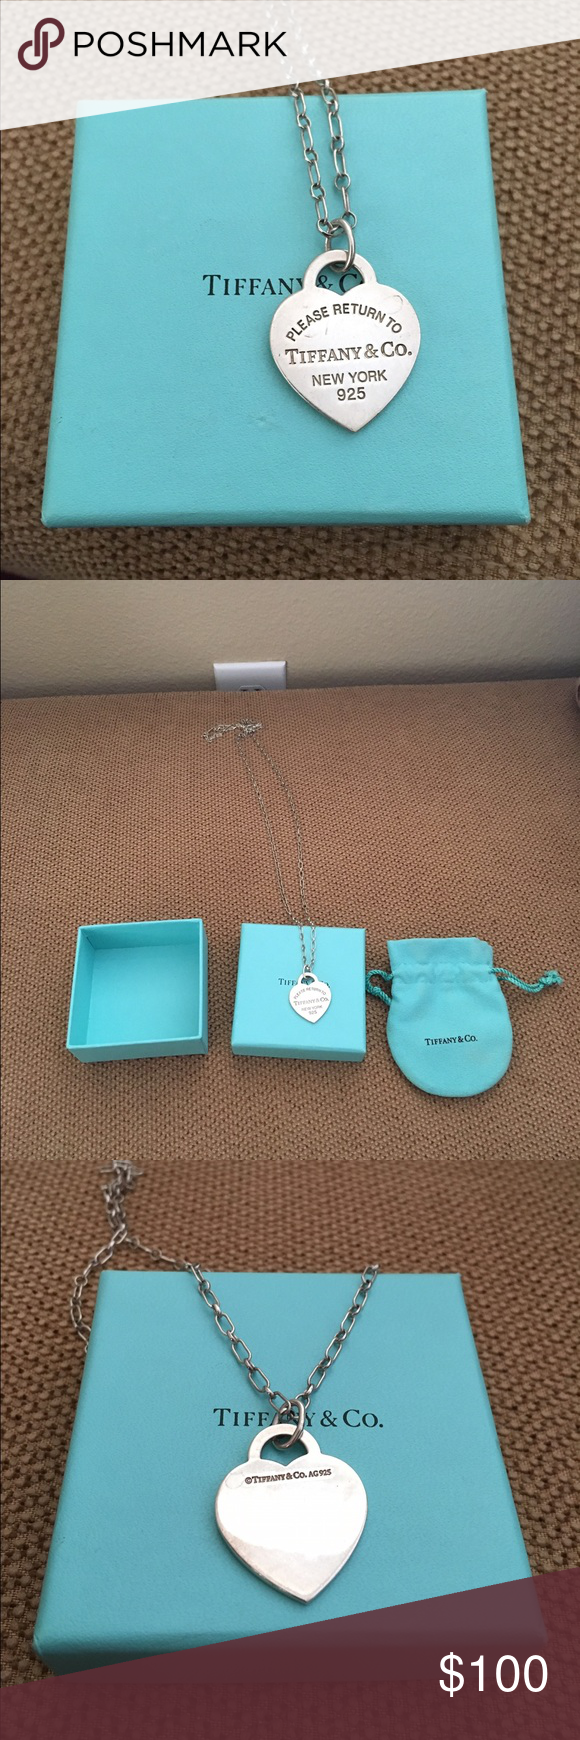 Authentic Tiffany Necklace 30 in chain, all in good condition Tiffany & Co. Jewelry Necklaces